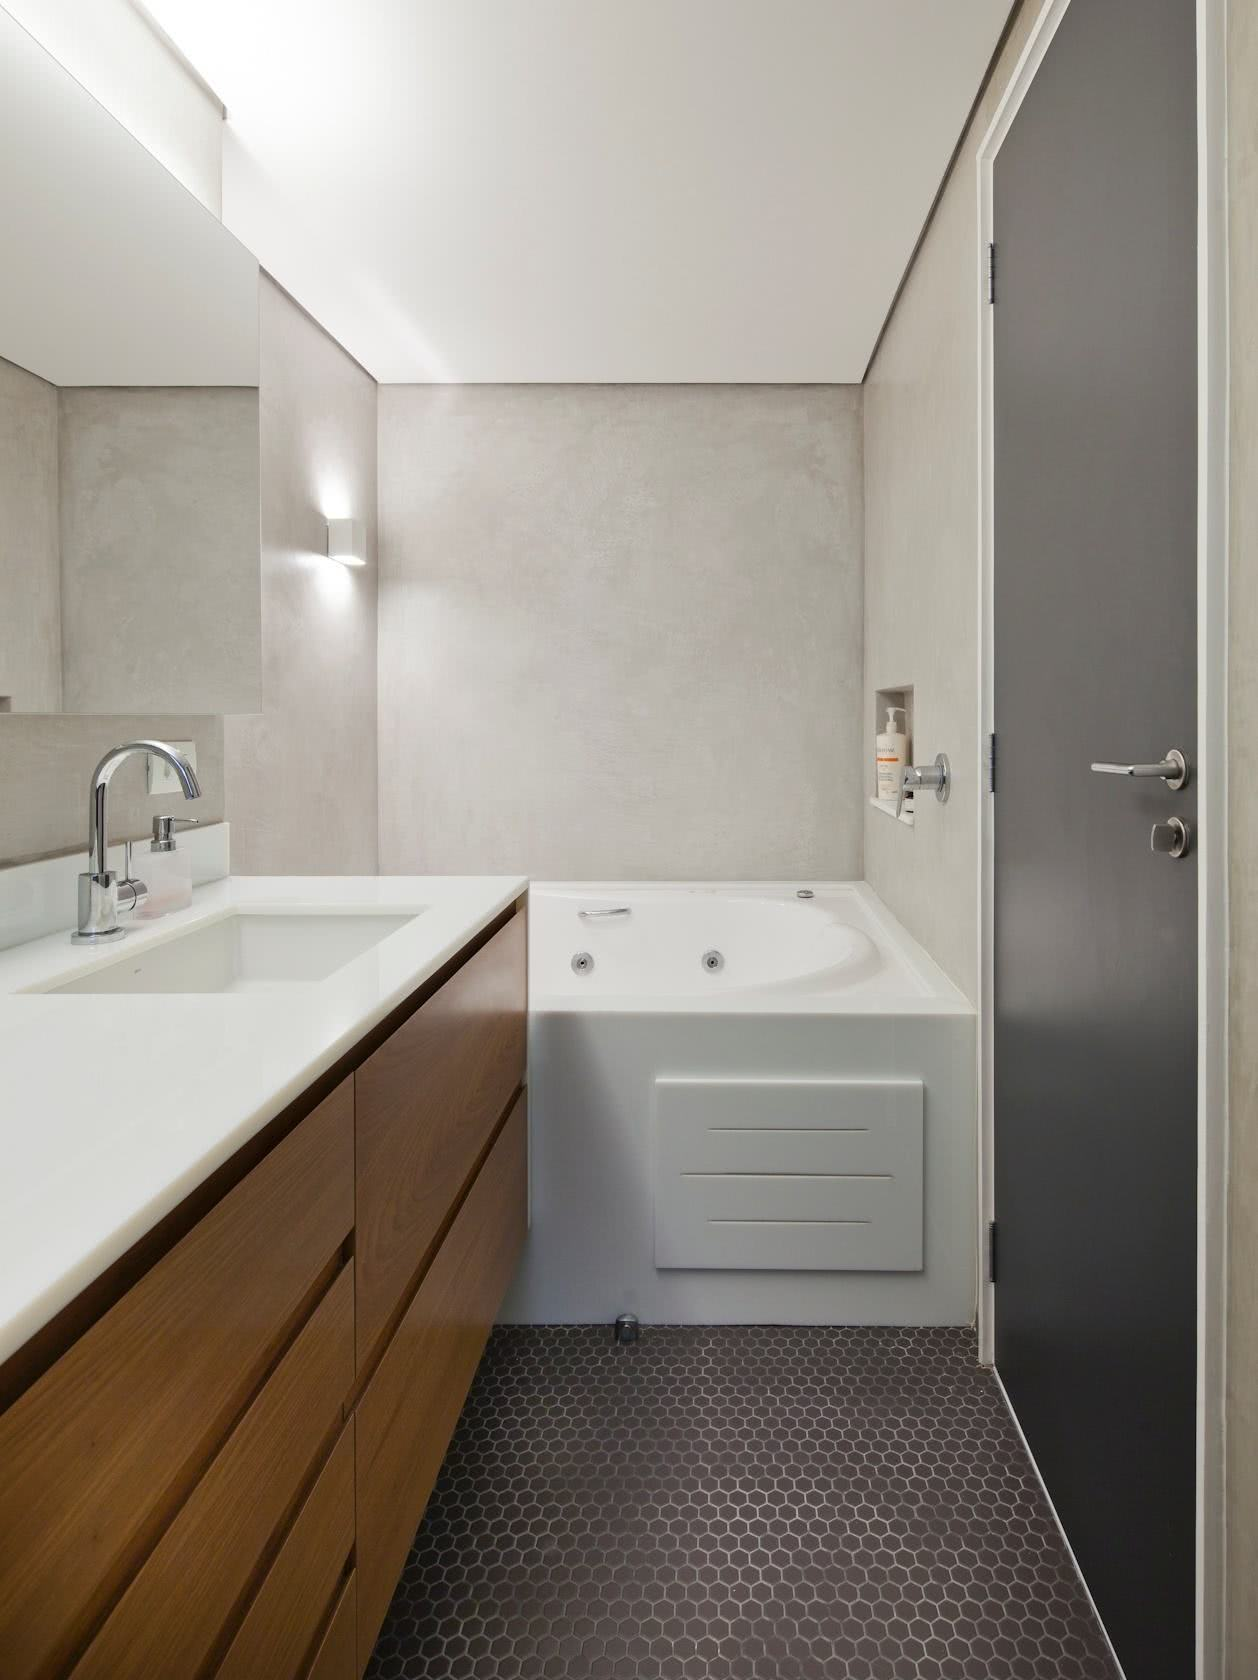 Prioritize the bathroom space with a large and comfortable area